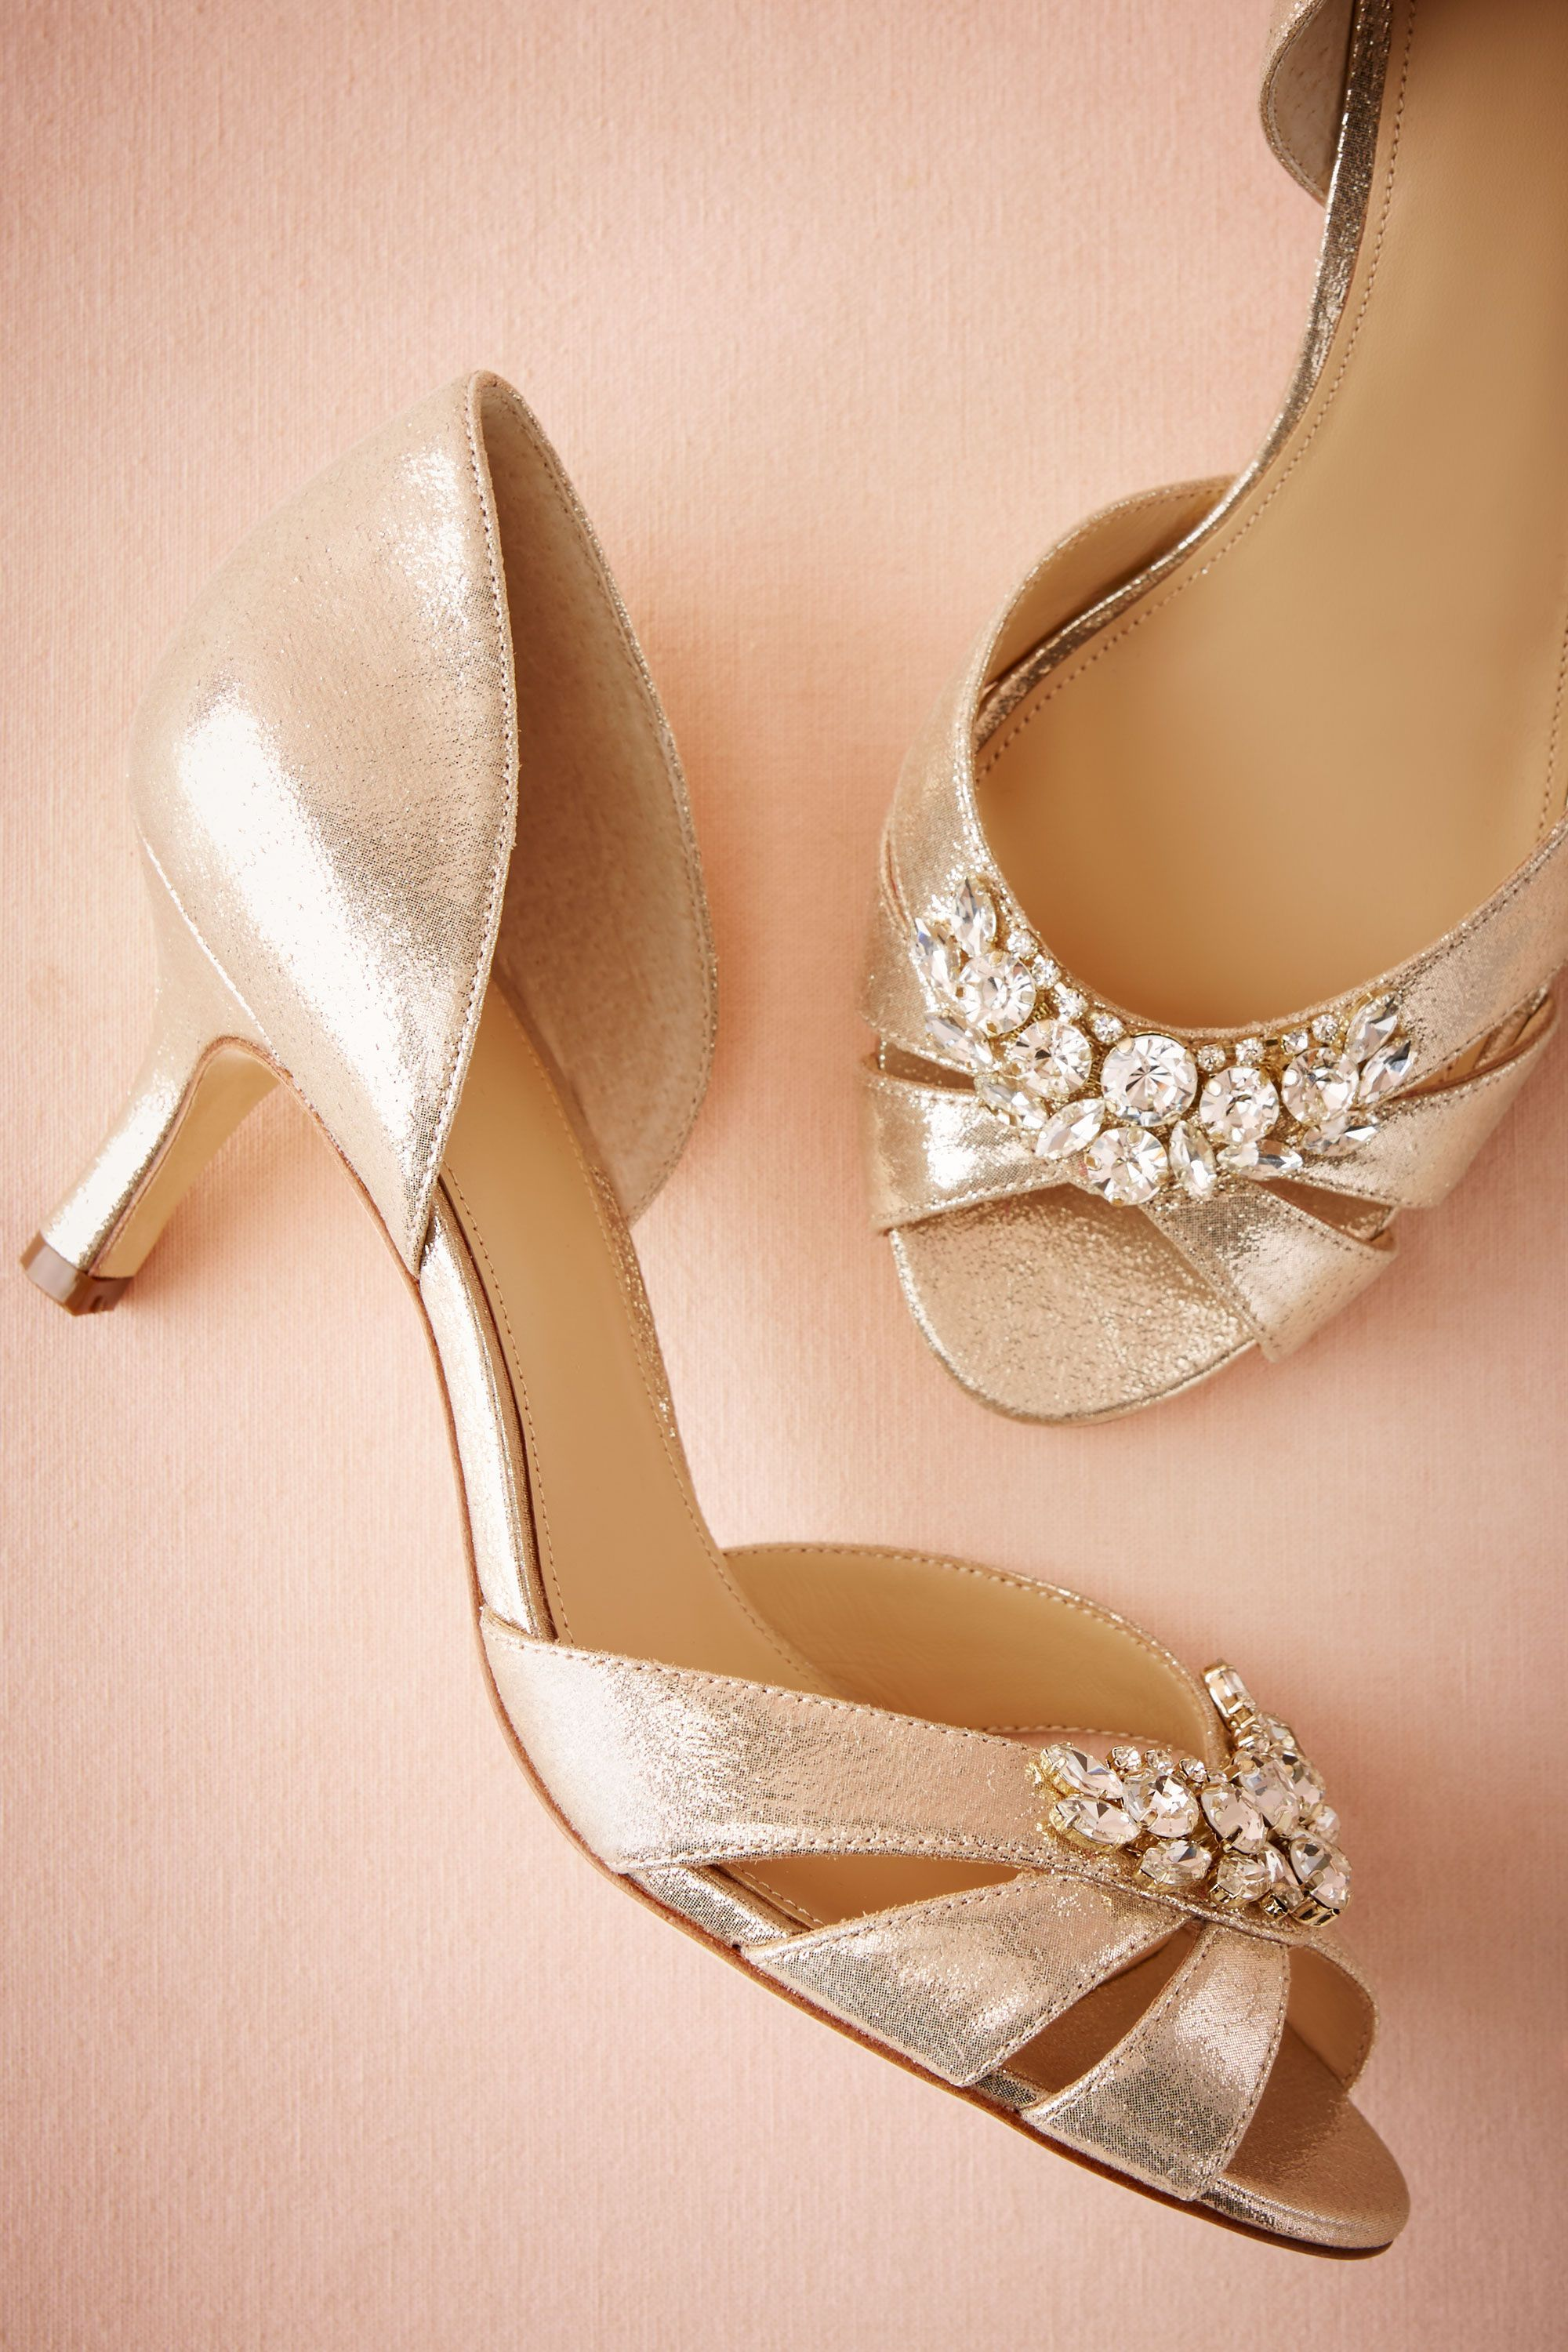 79ca12ec3 Martina dOrsay from  BHLDN I HAVE FOUND MY SHOES FOR THE BIG DAY!..cc